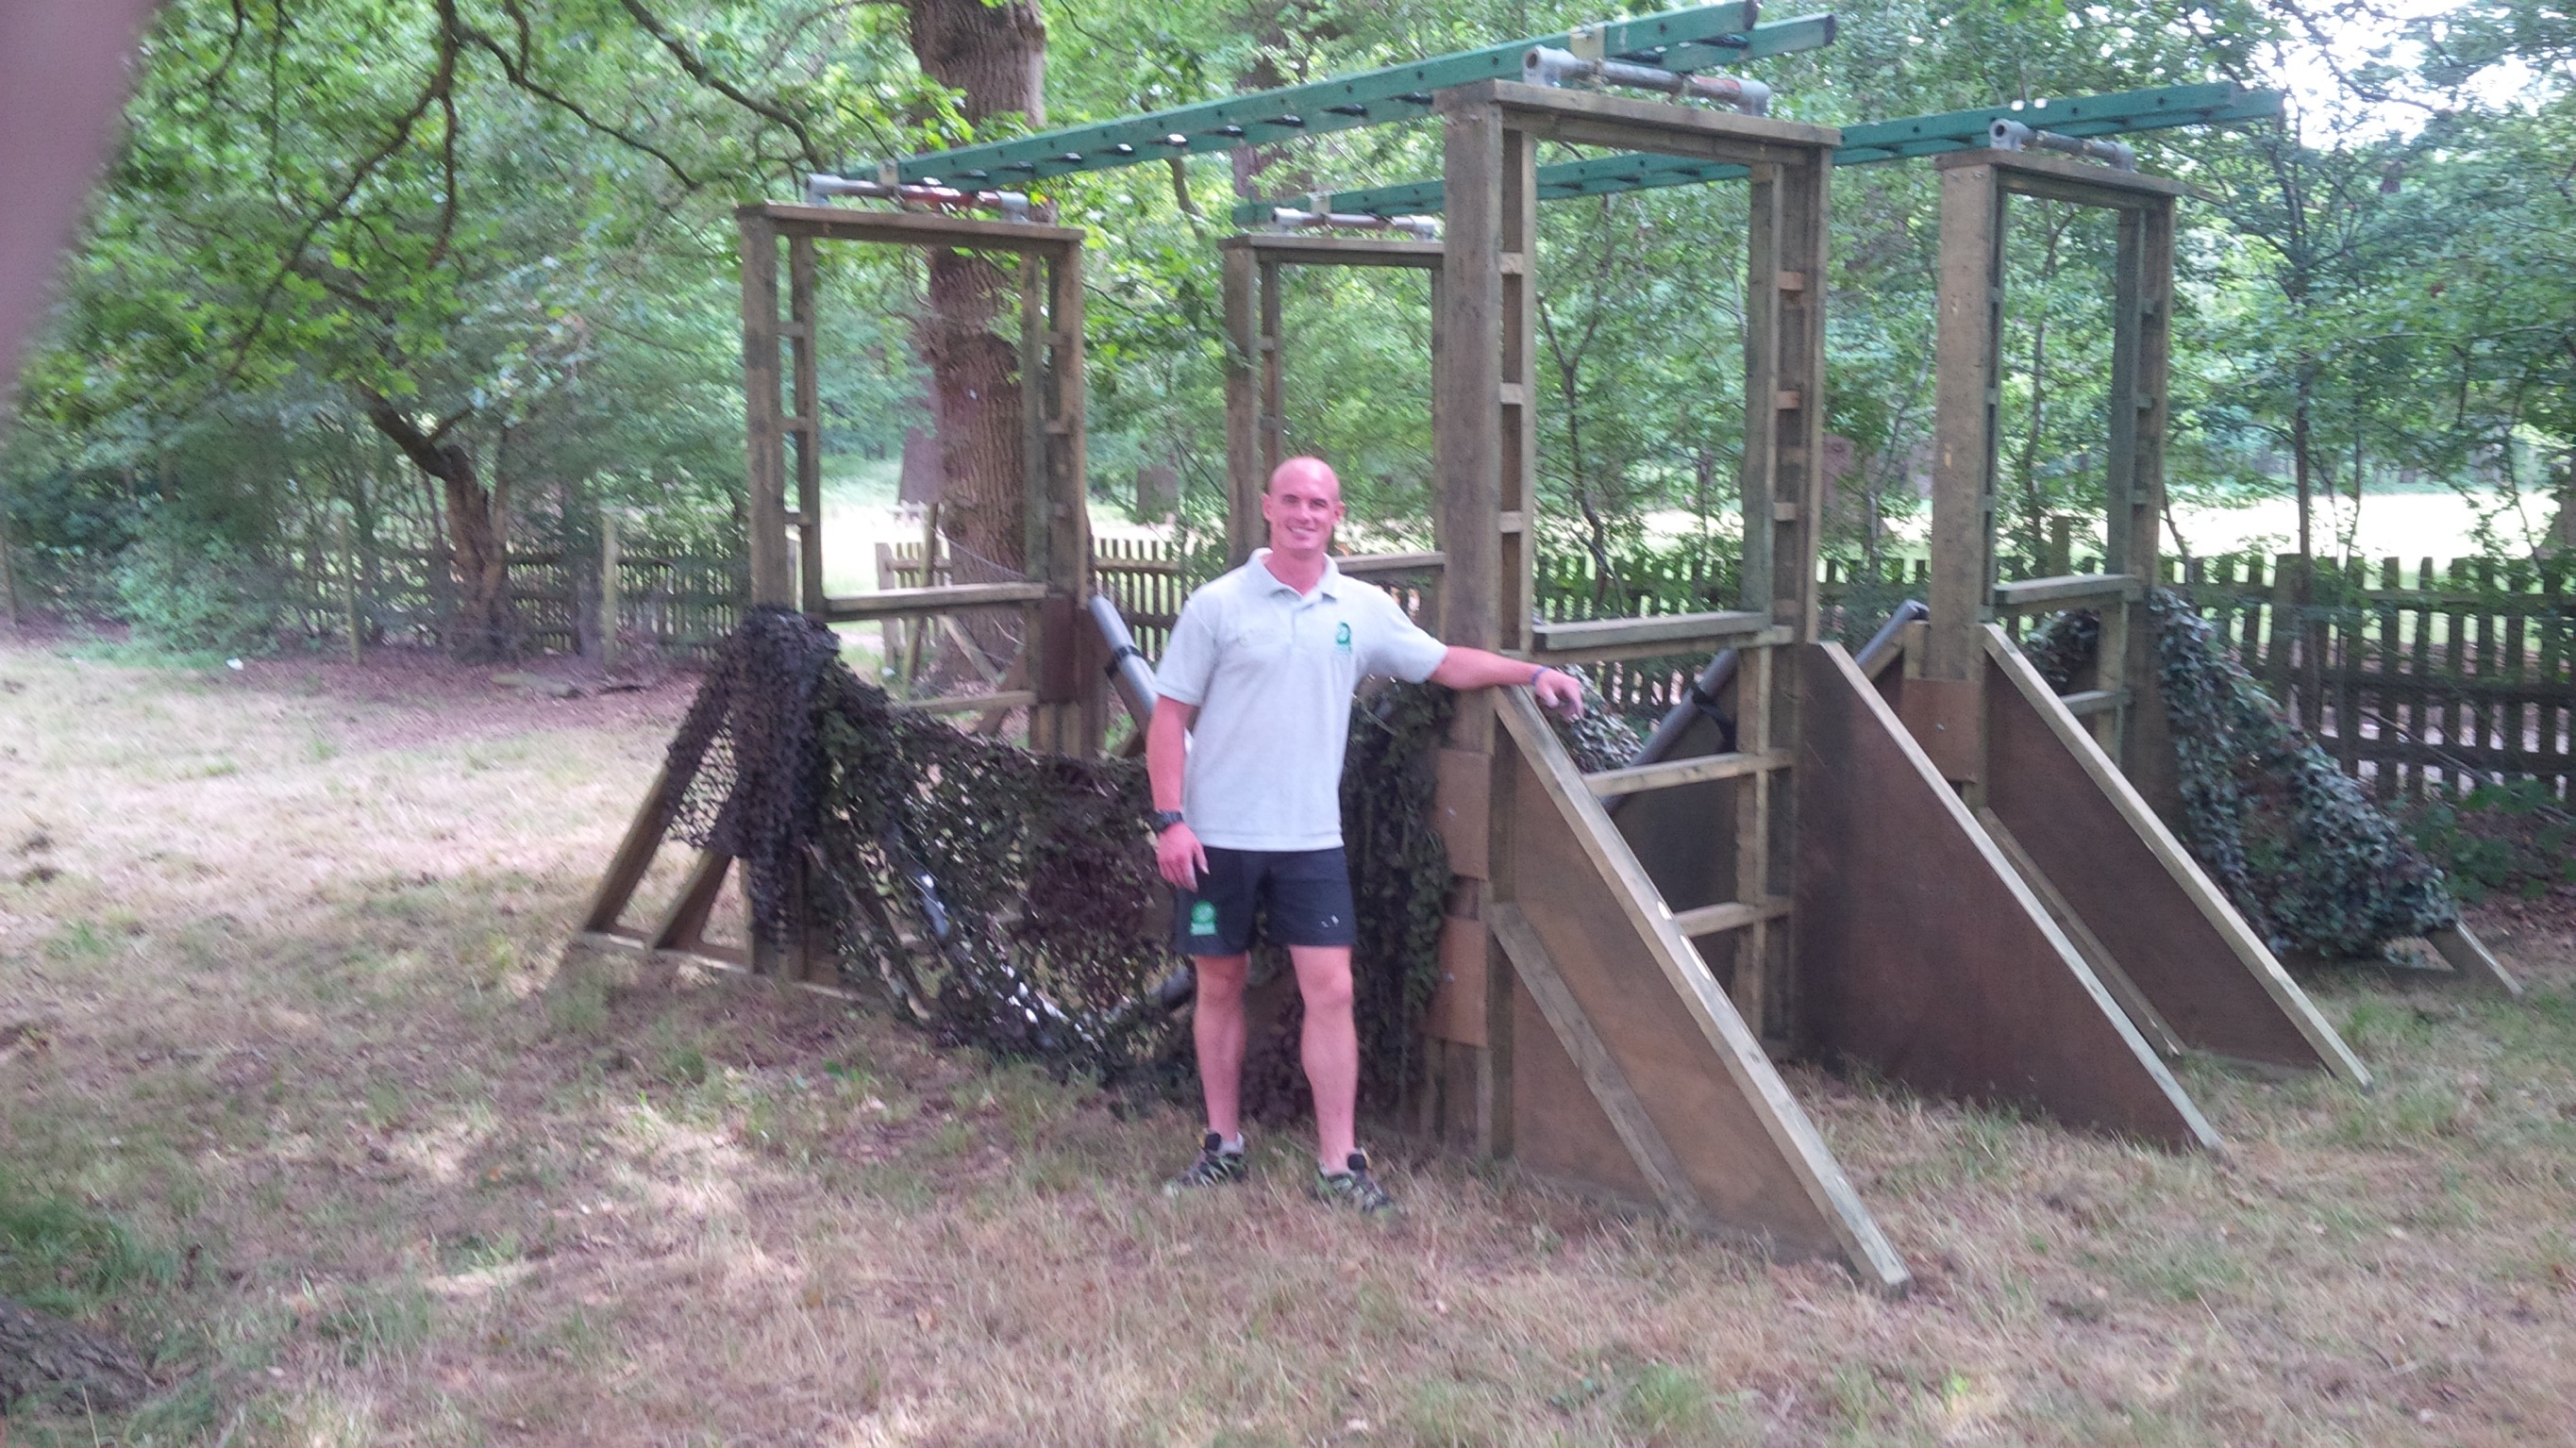 Person Standing With Obstacle Course Equipment